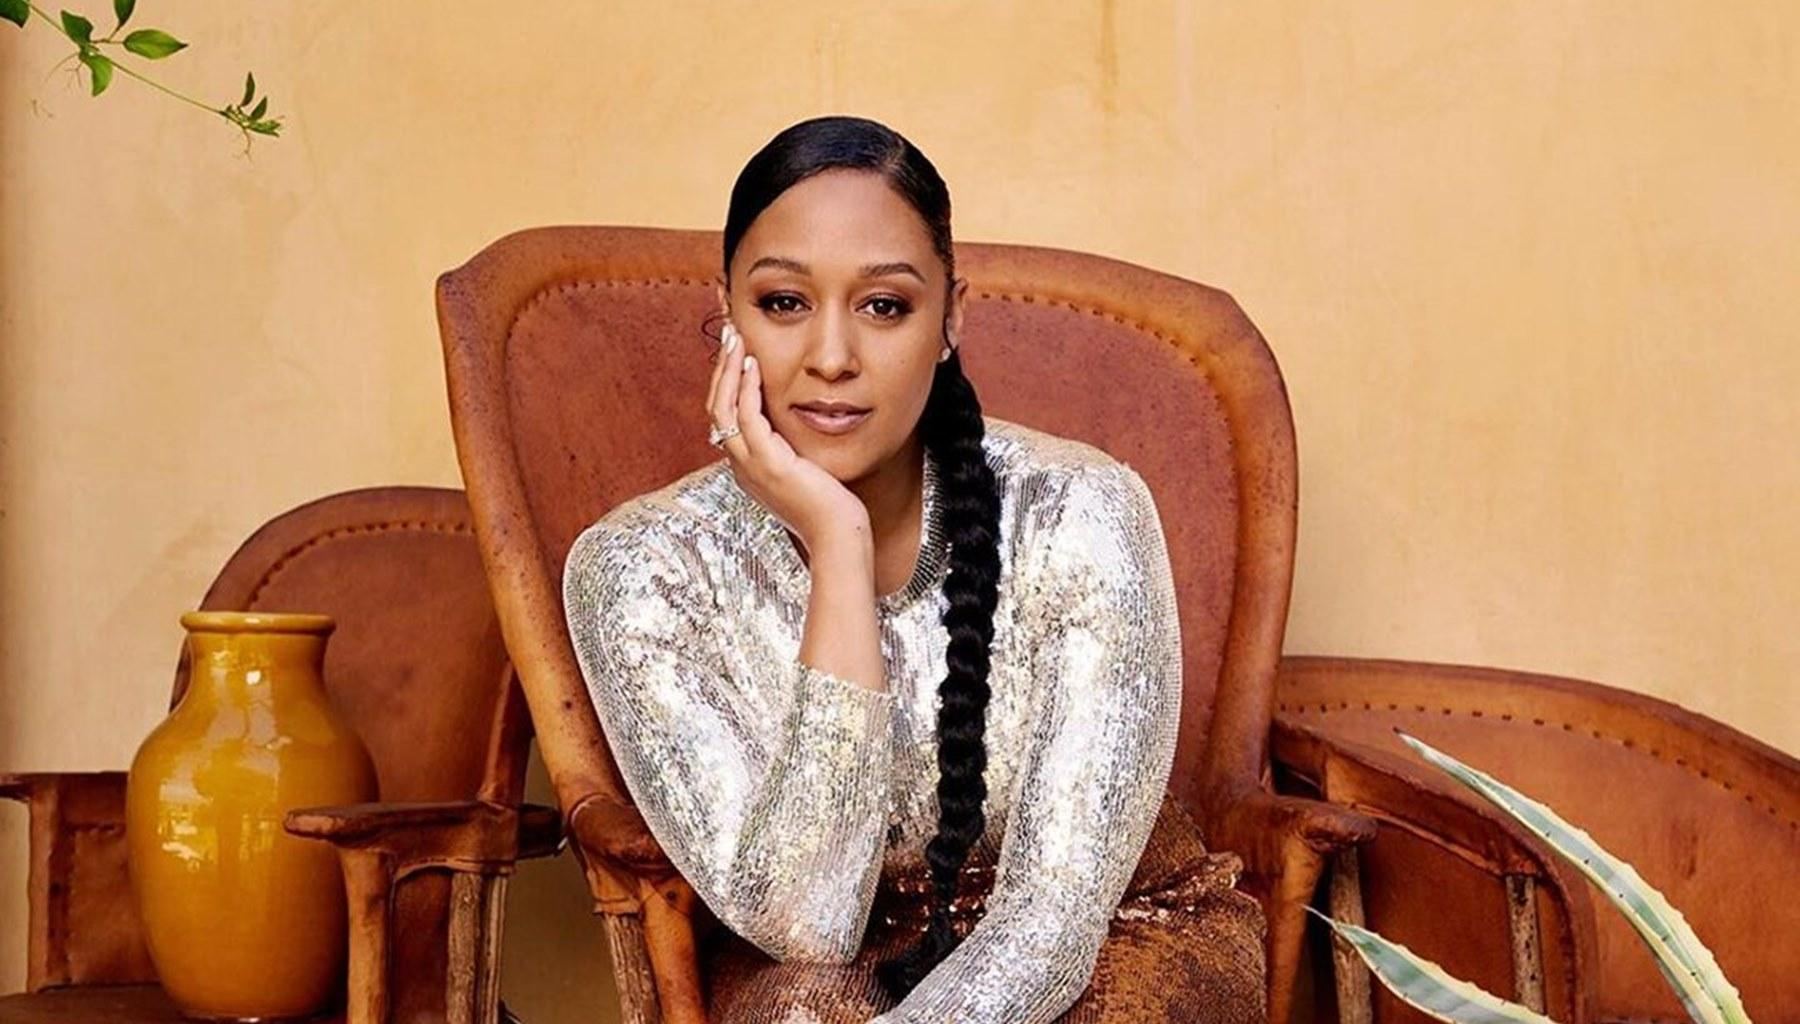 Tia Mowry Has Fans In Tears After Posting This Video